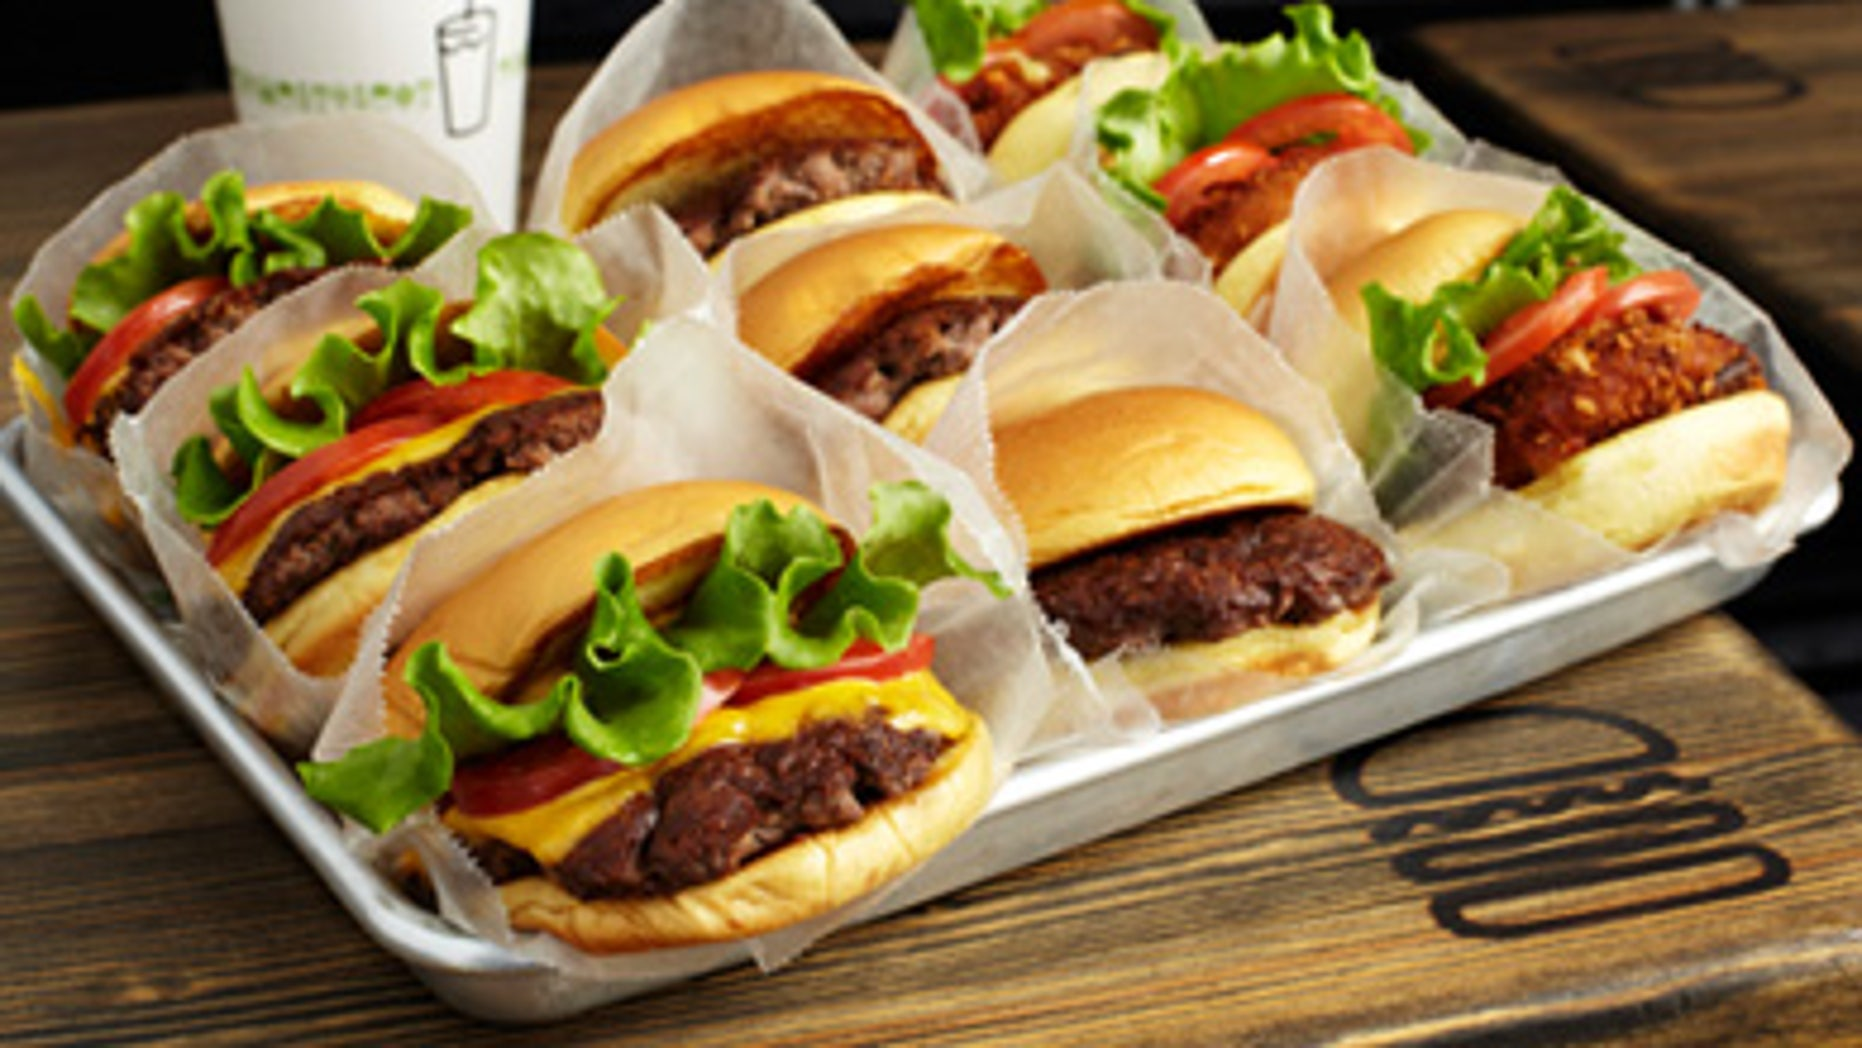 The burgers at Shake Shack are taking the world by storm.